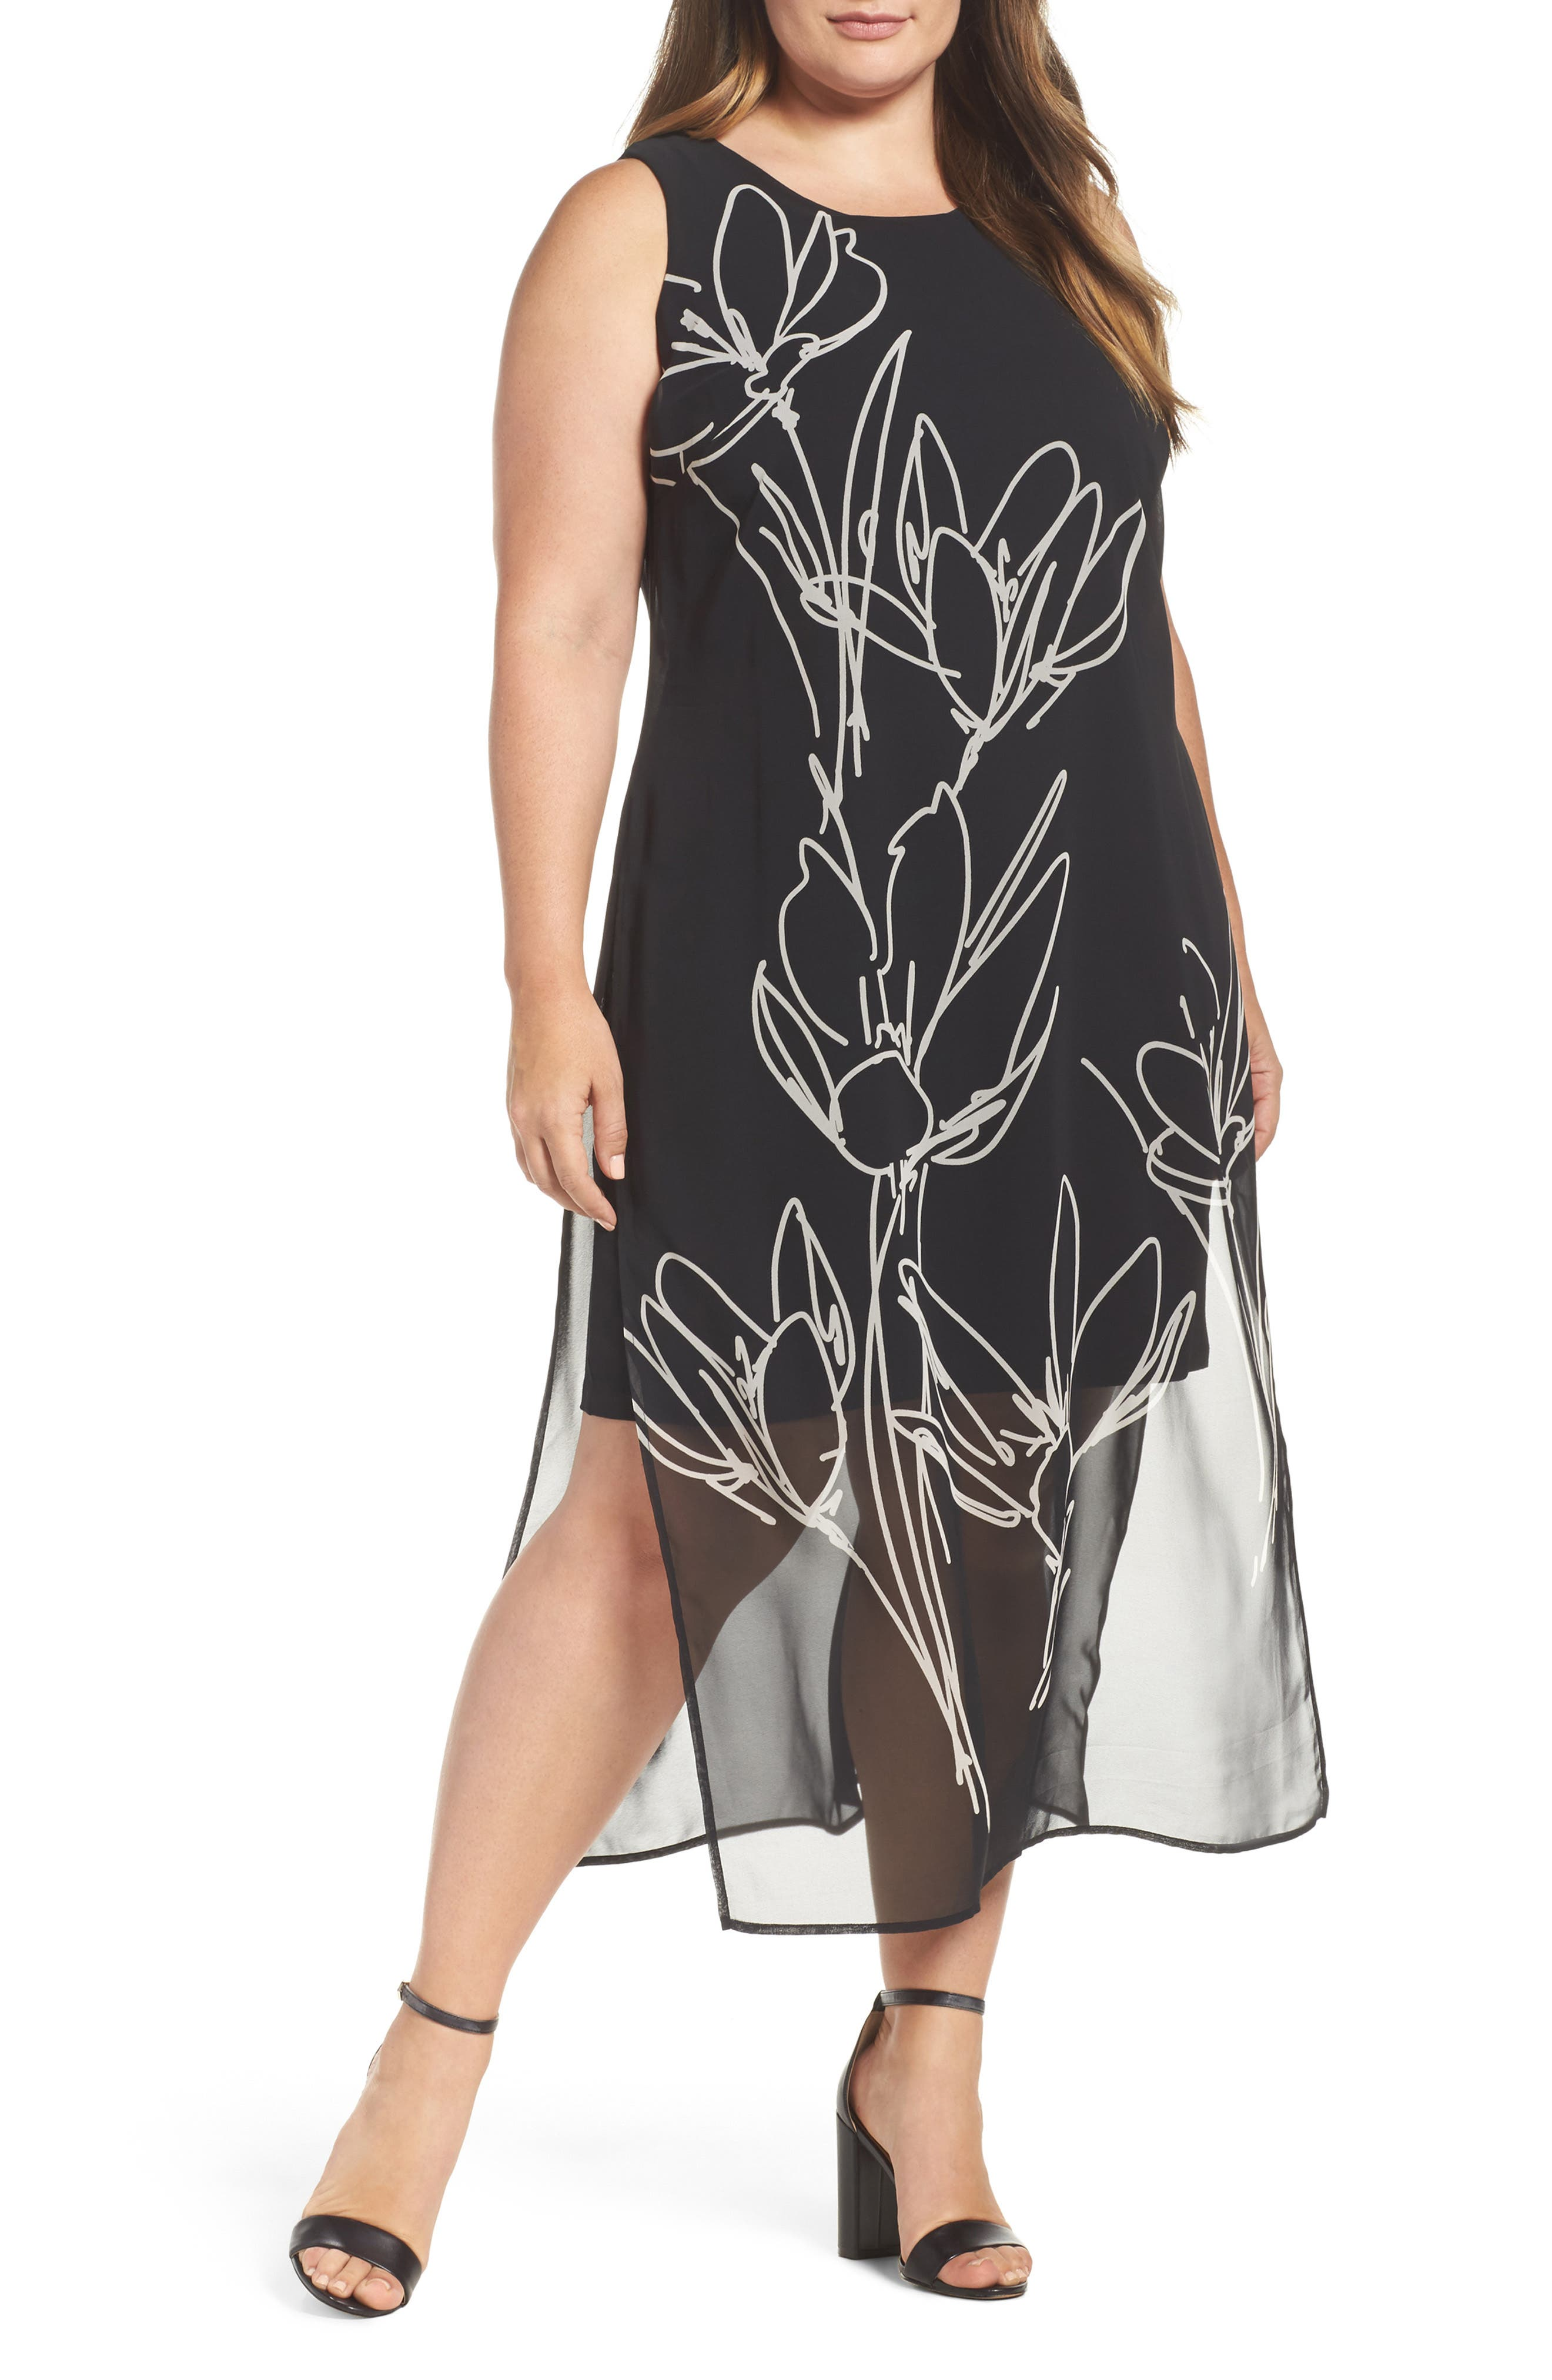 Vince Camuto Fluent Cluster Overlay Shift Dress (Plus Size)